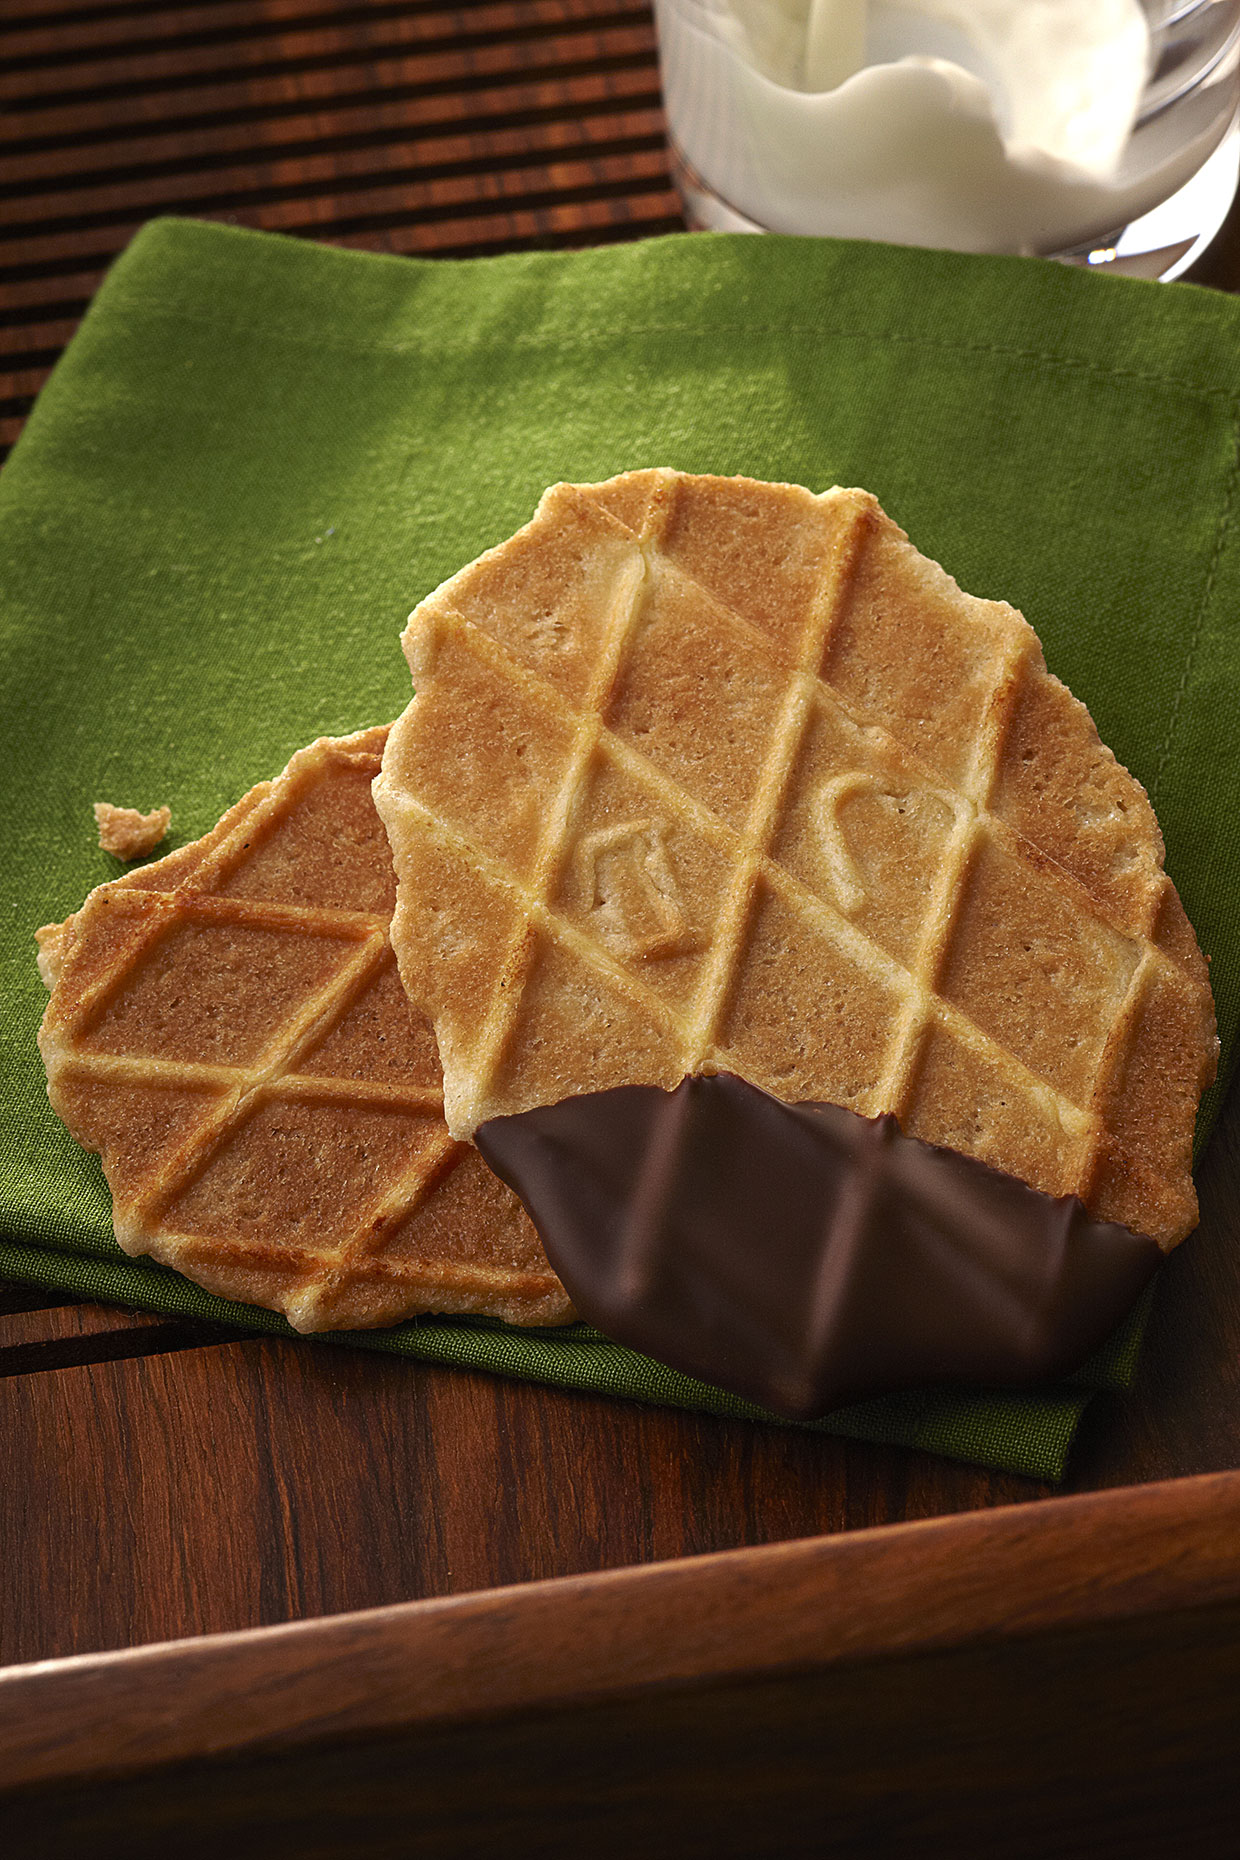 Waffle Cookie dipped in chocolate